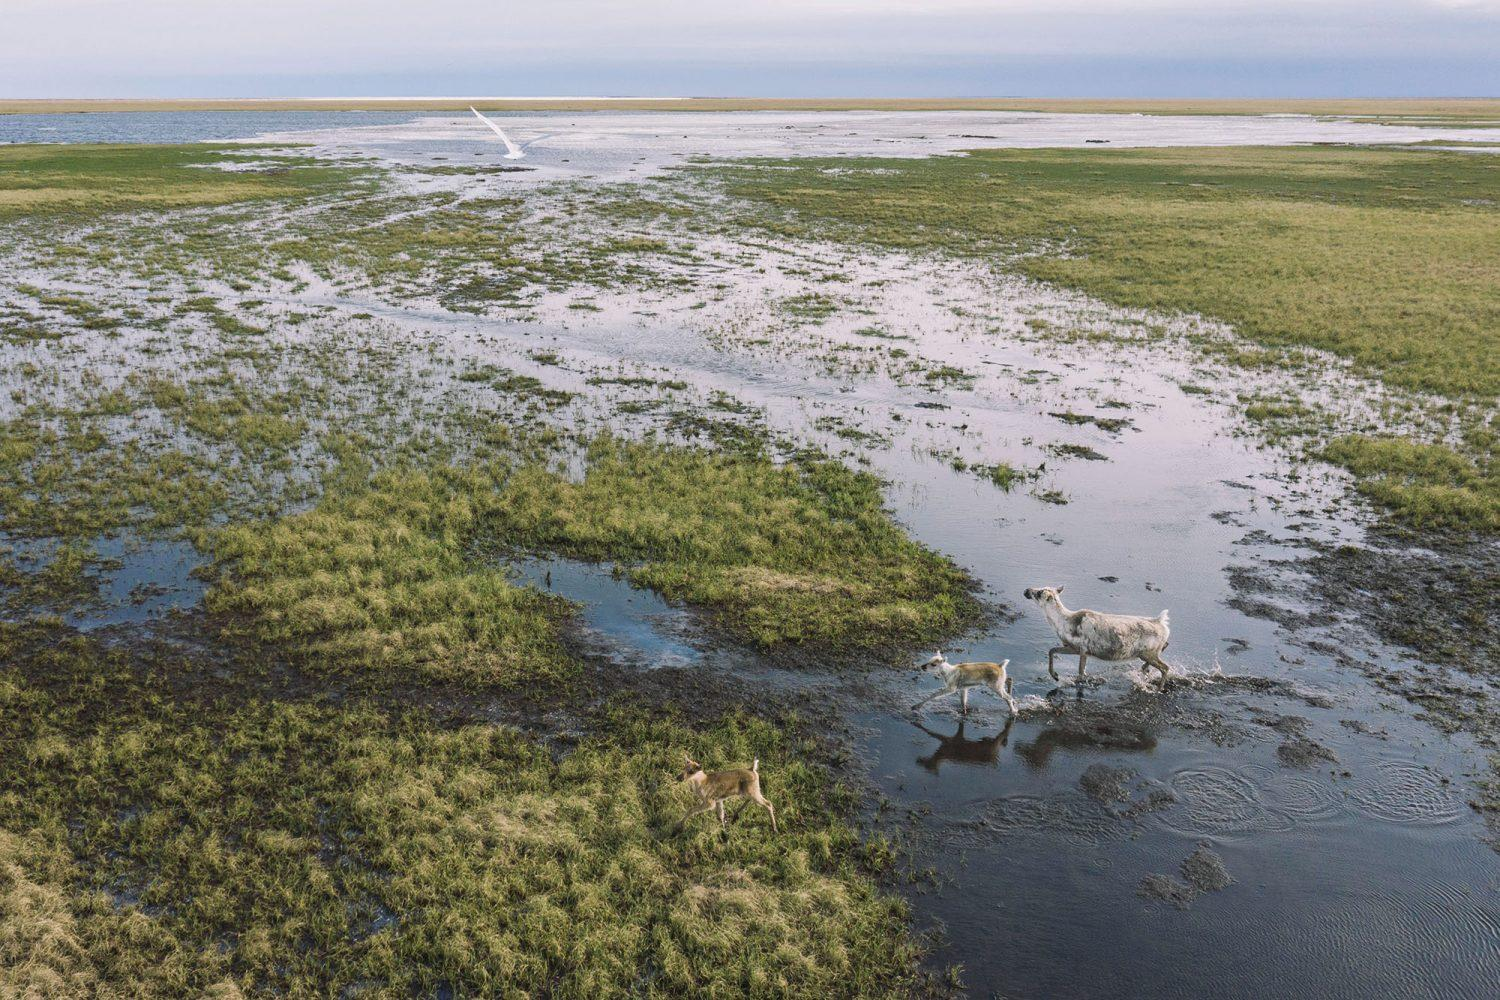 Caribou and migratory birds in the Western Arctic around the Lake Teshekpuk area.